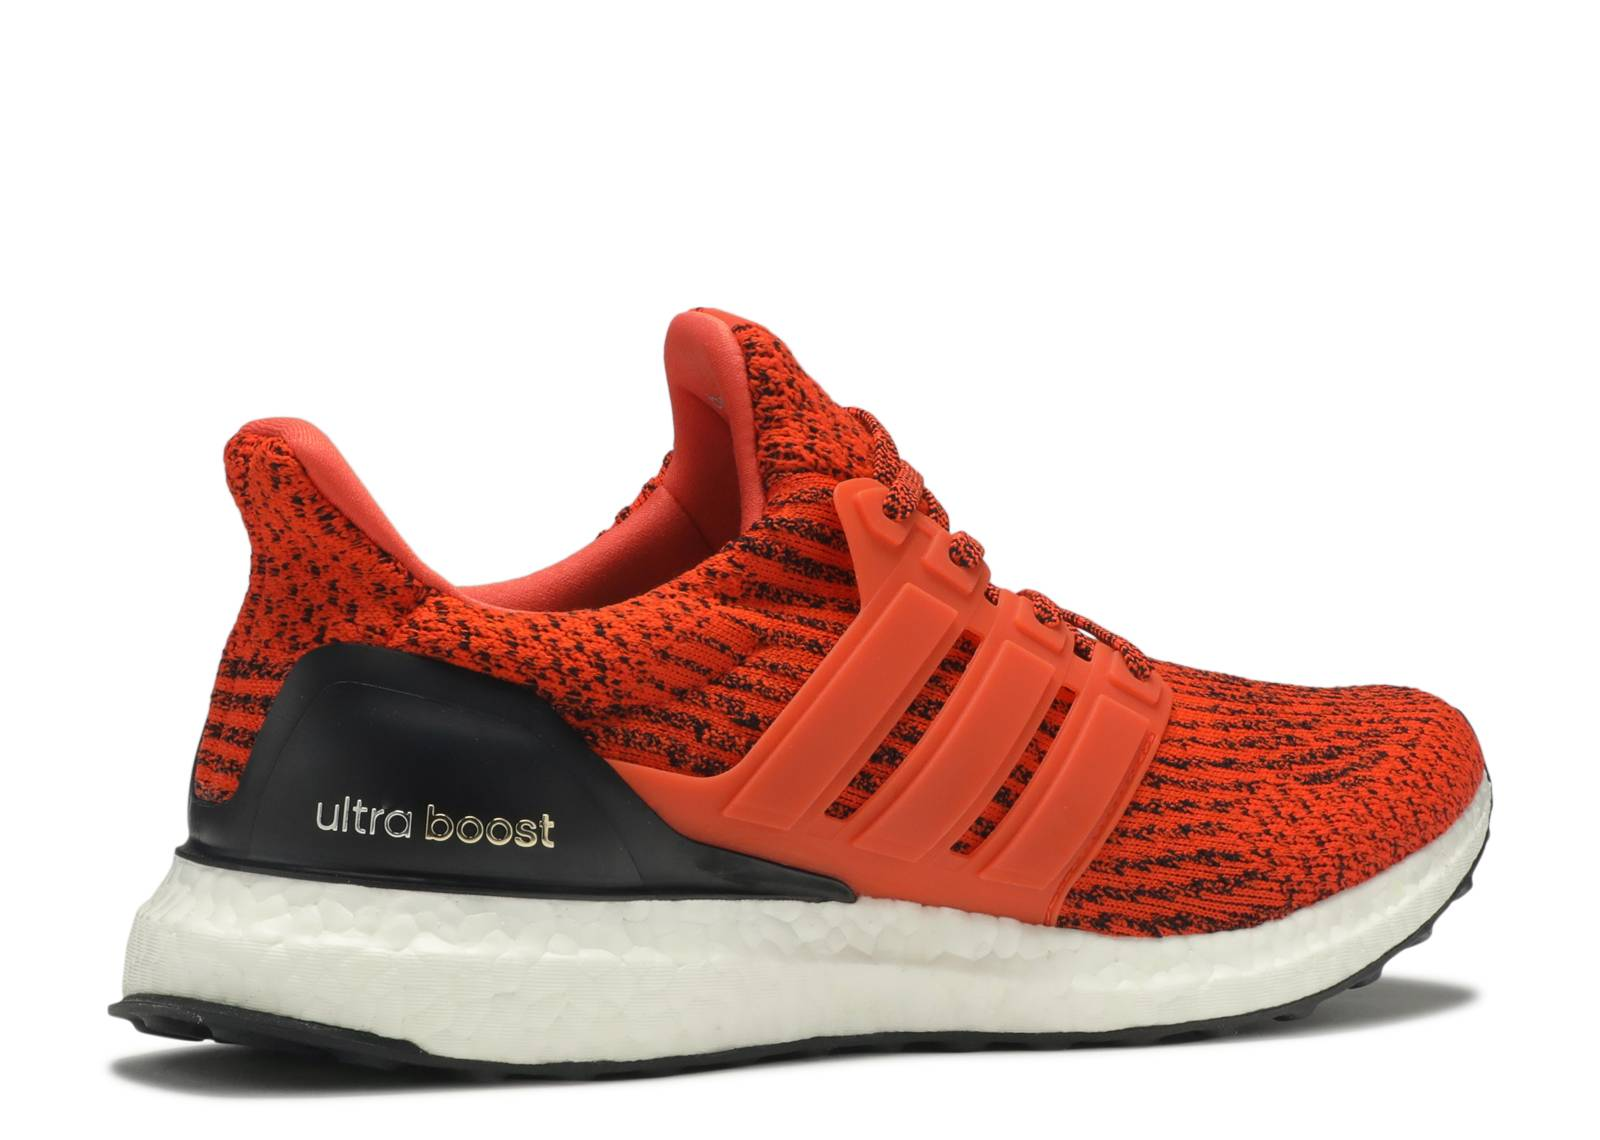 bda257602 Ultra Boost 3.0 - Adidas - S80635 - red white black